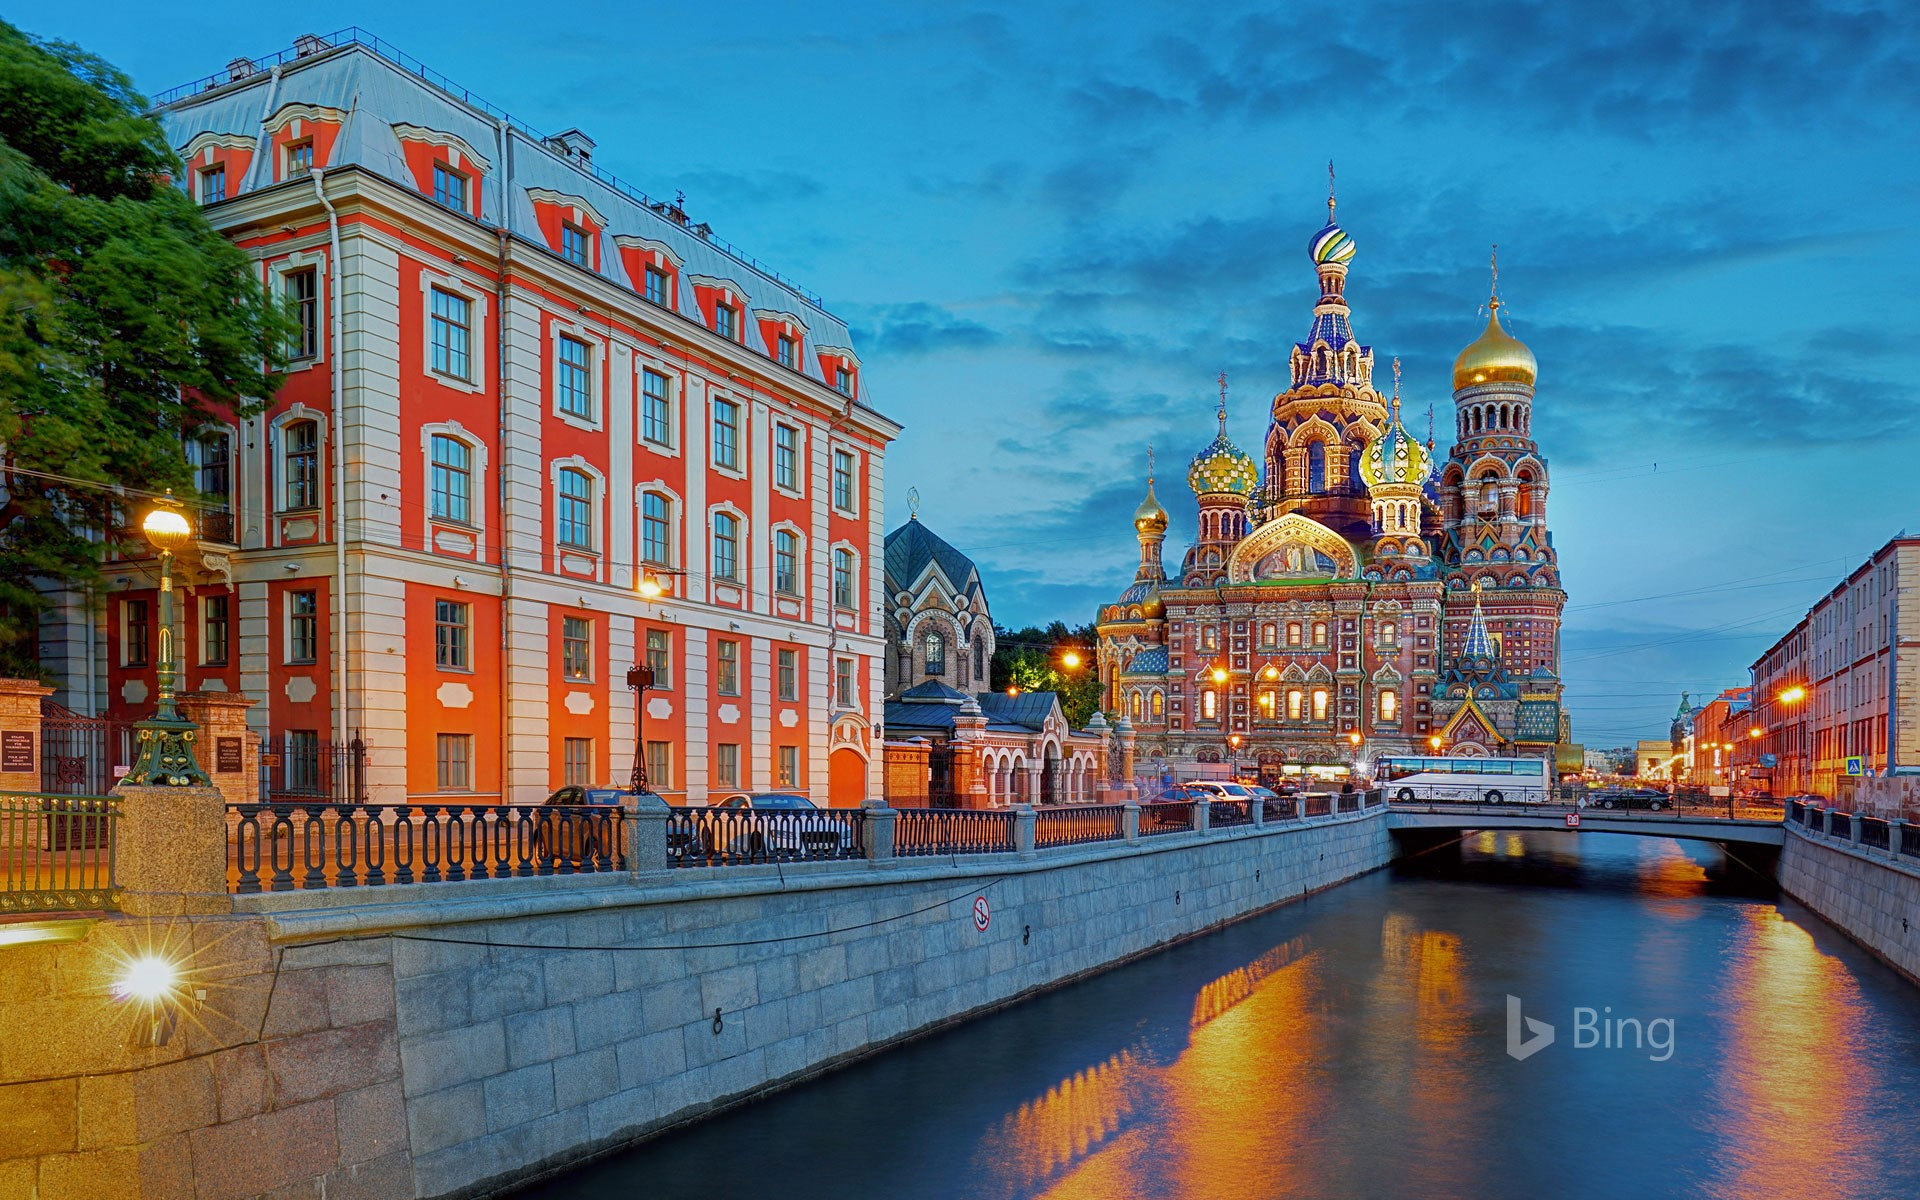 Griboyedov Canal and the Church of the Savior on Spilled Blood in Saint Petersburg, Russia